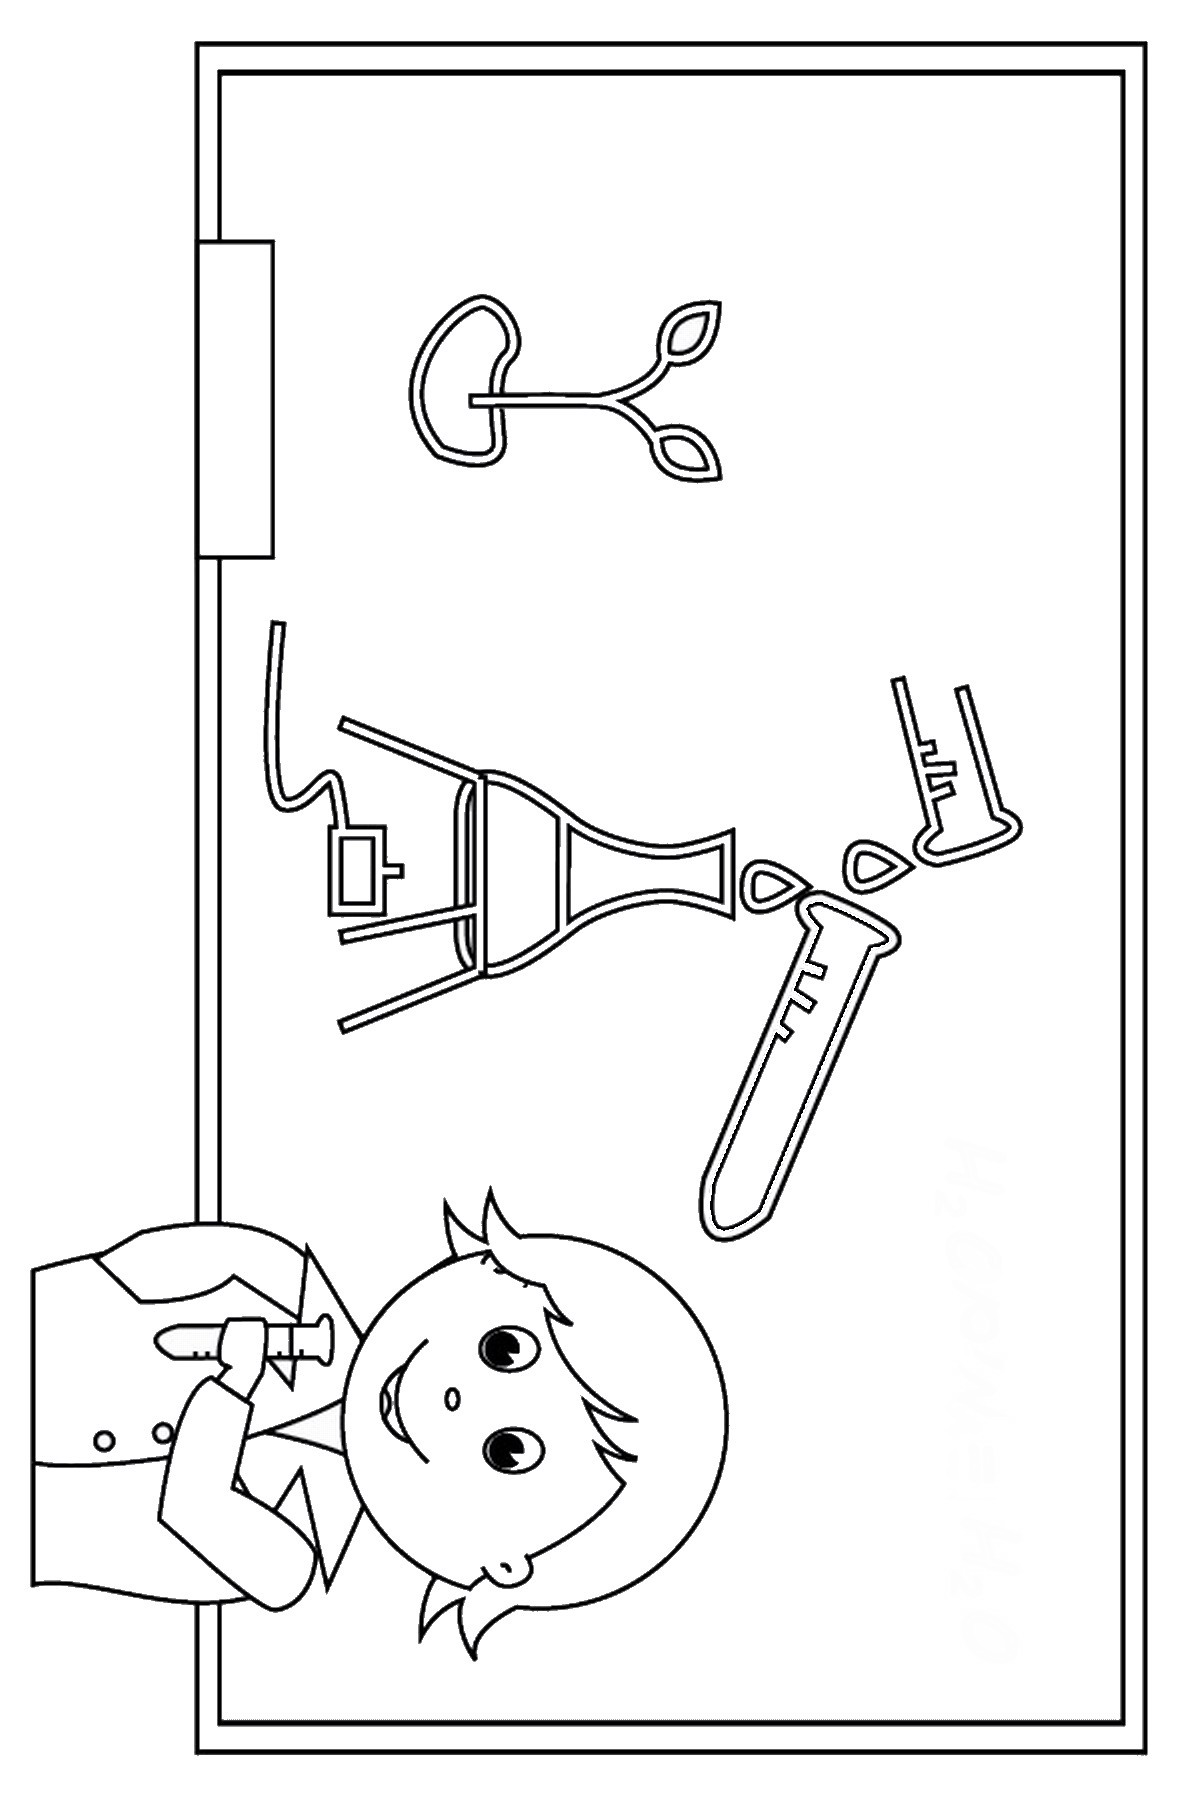 science coloring sheet science coloring pages sheet science coloring 1 1